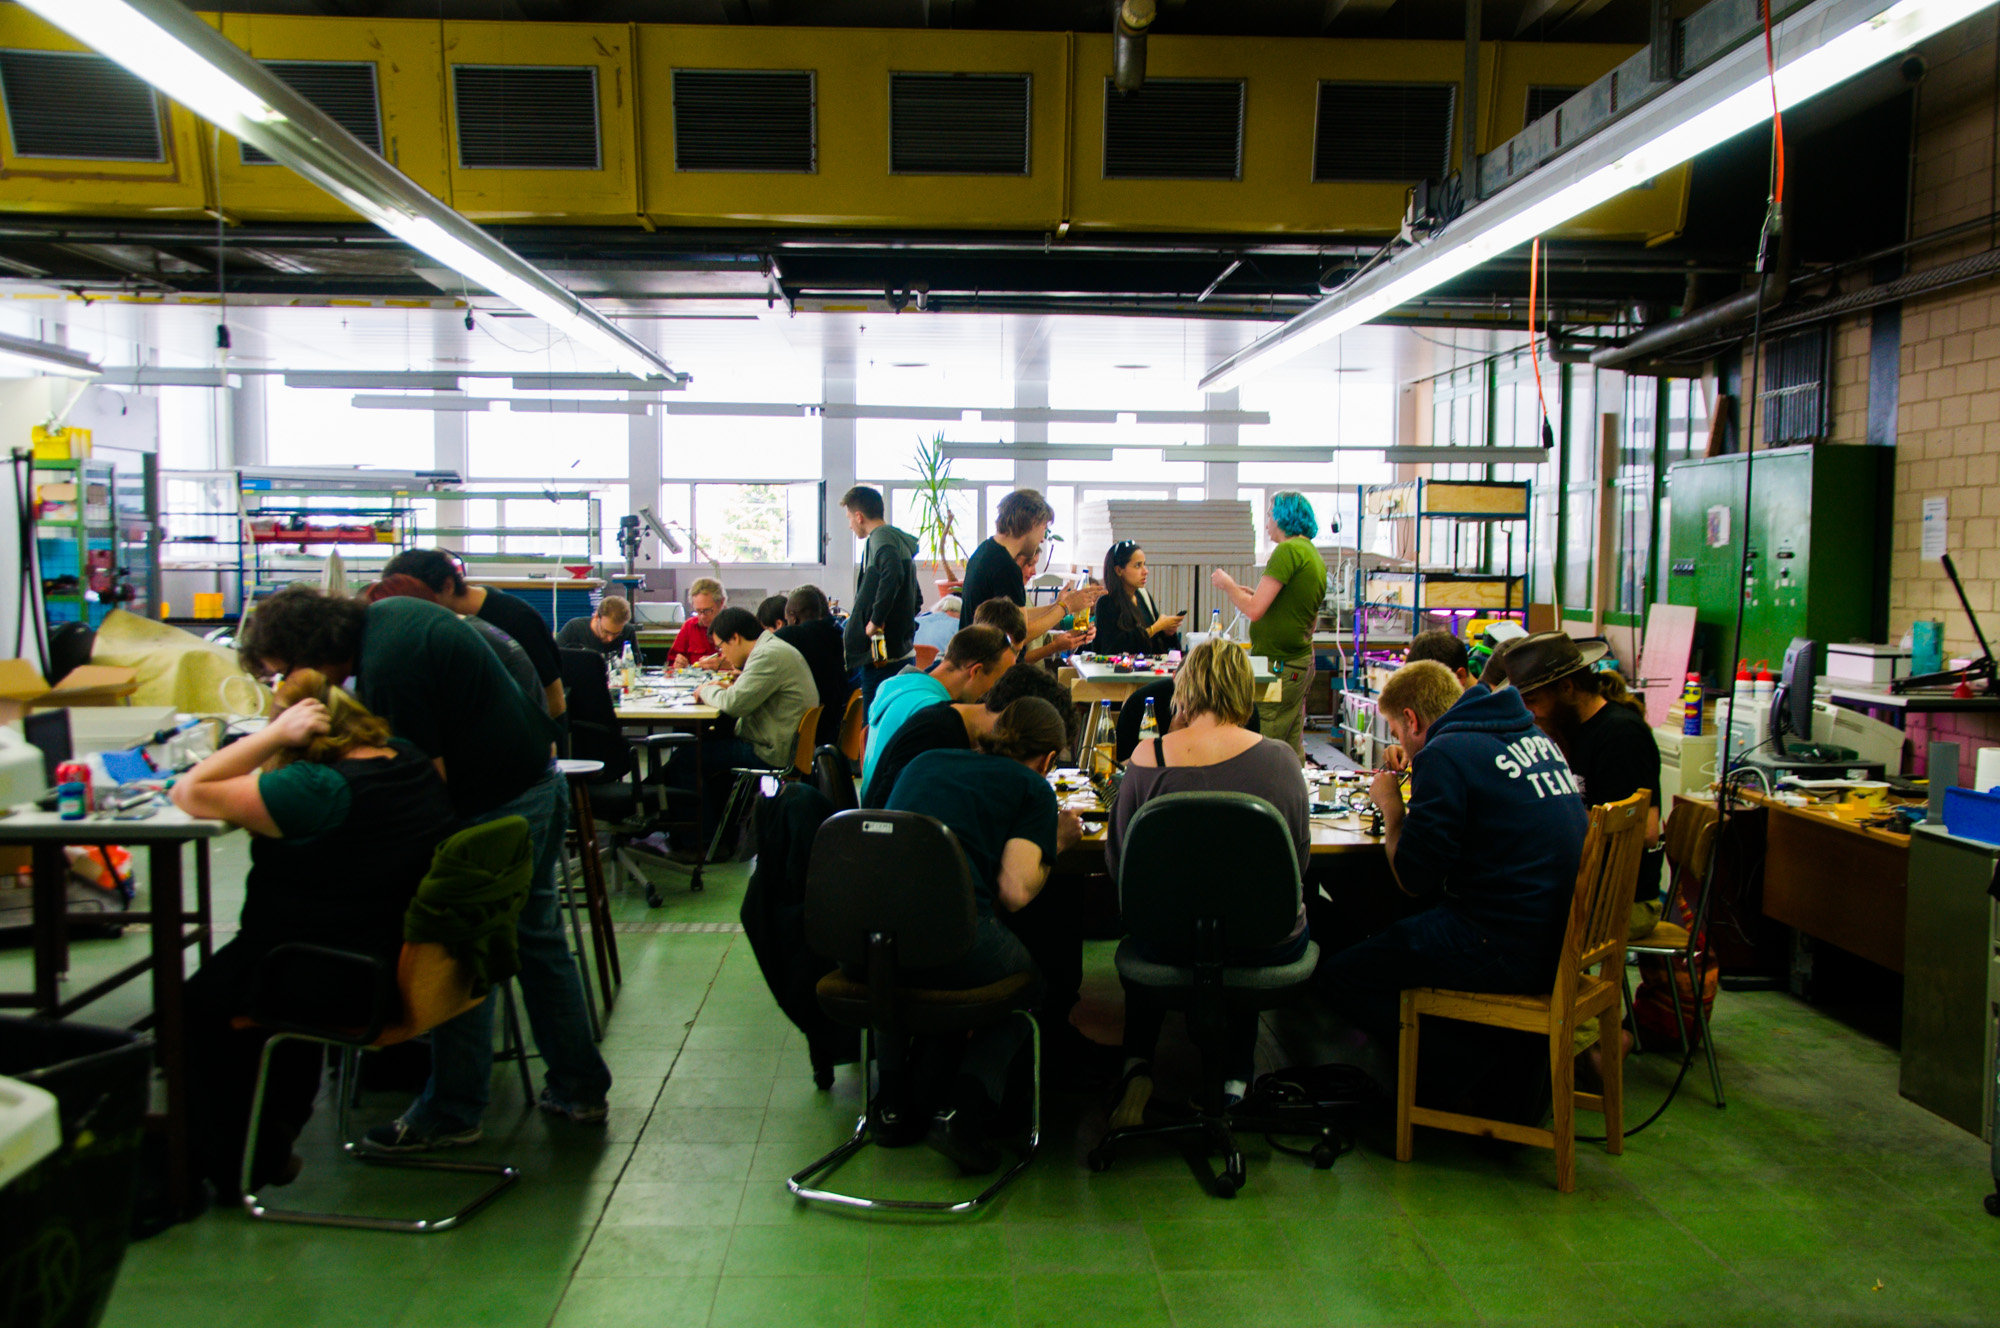 Solder_workshop_at_FIXME_Hackerspace,_Renens,_Lausanne_(2015-05-23_06.25.10_by_Mitch_Altman)